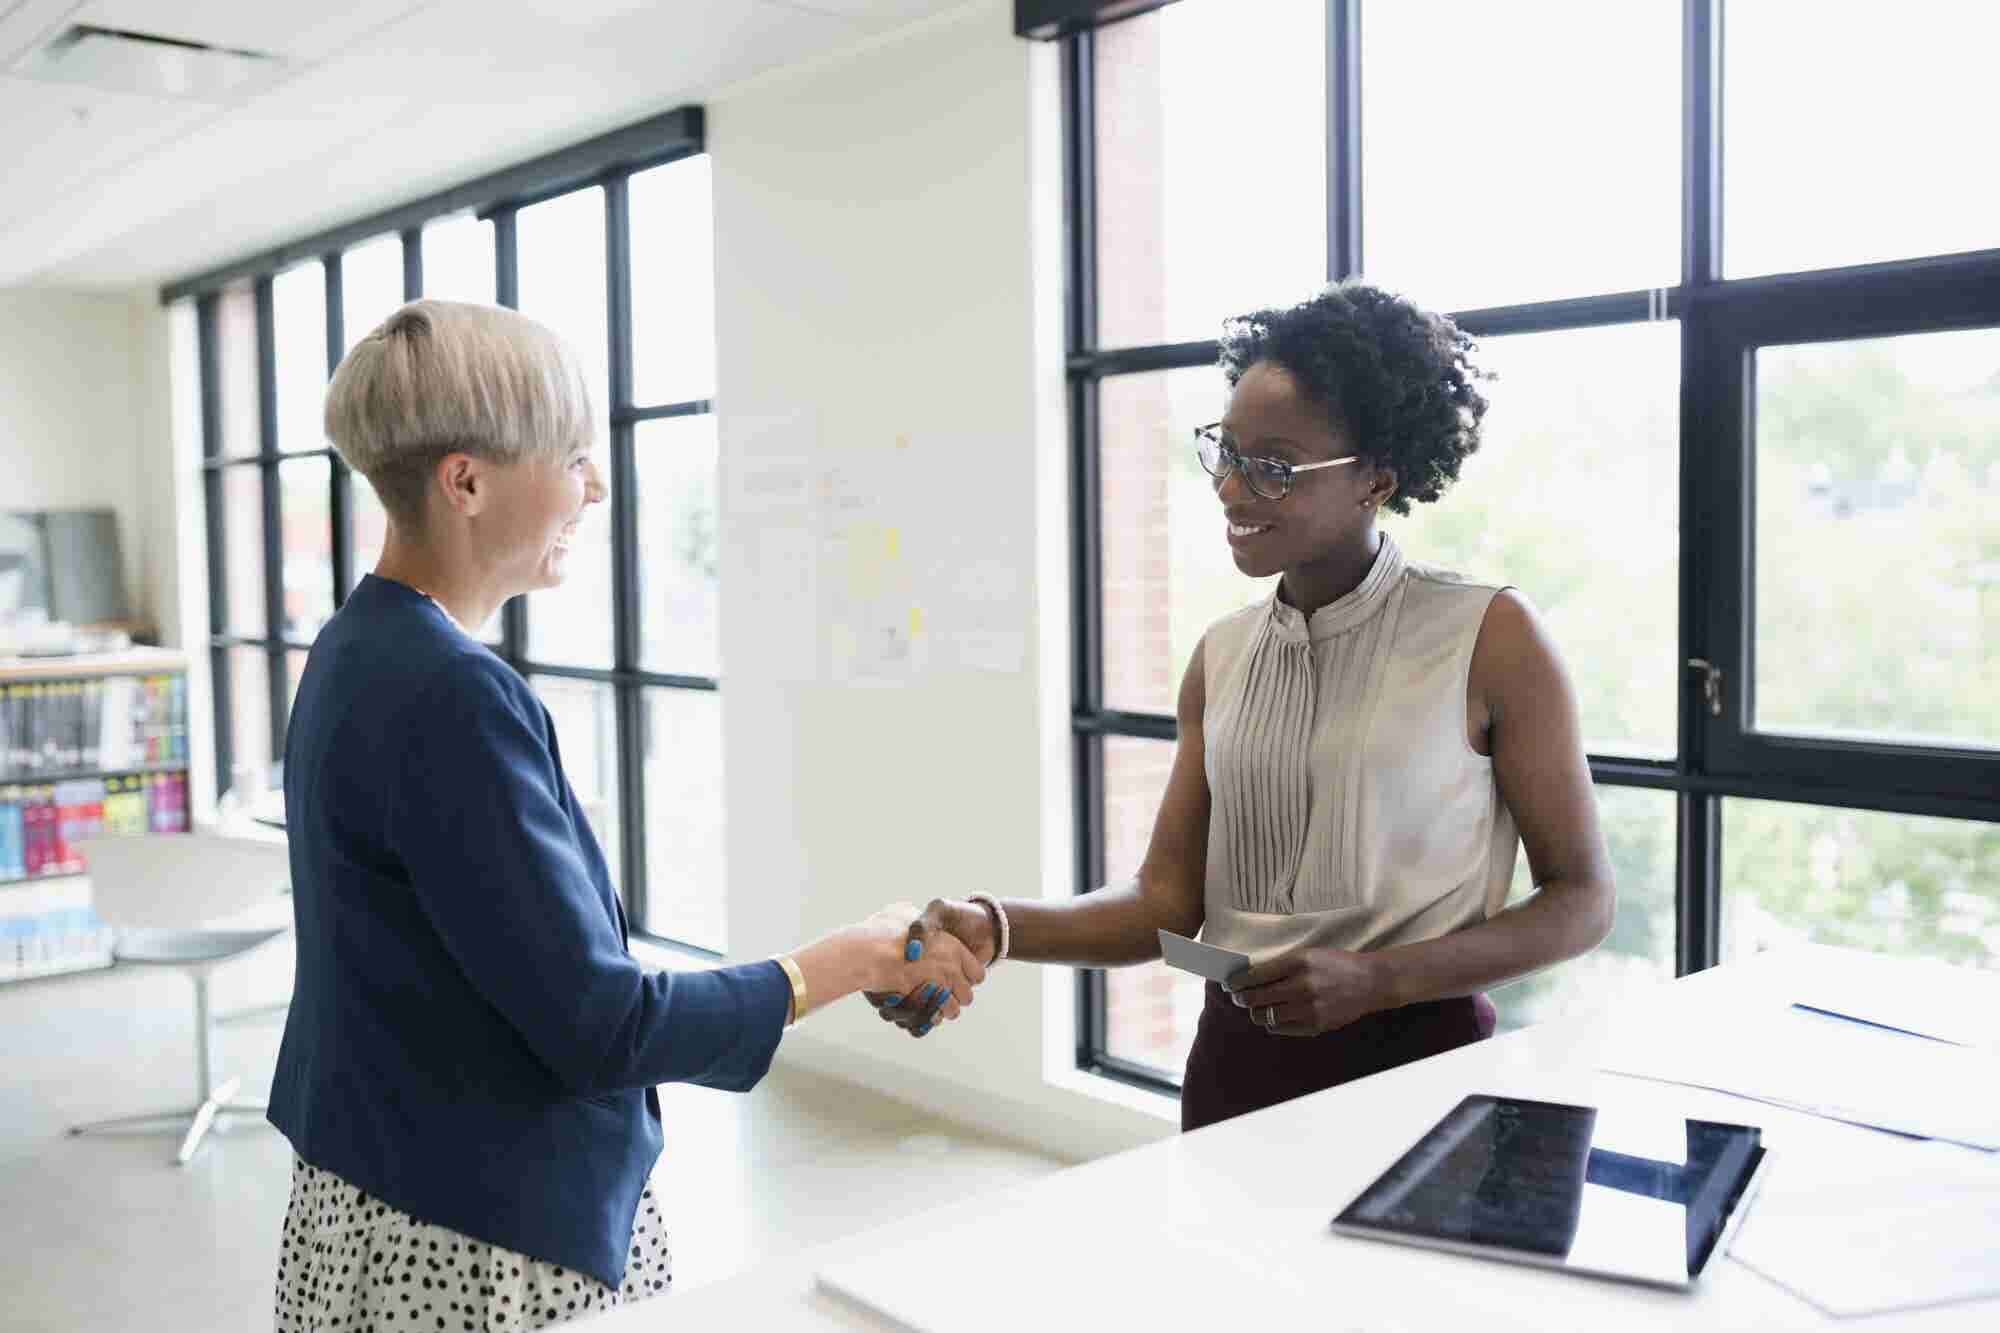 What Every Entrepreneur Needs to Get Right About the Customer Experience